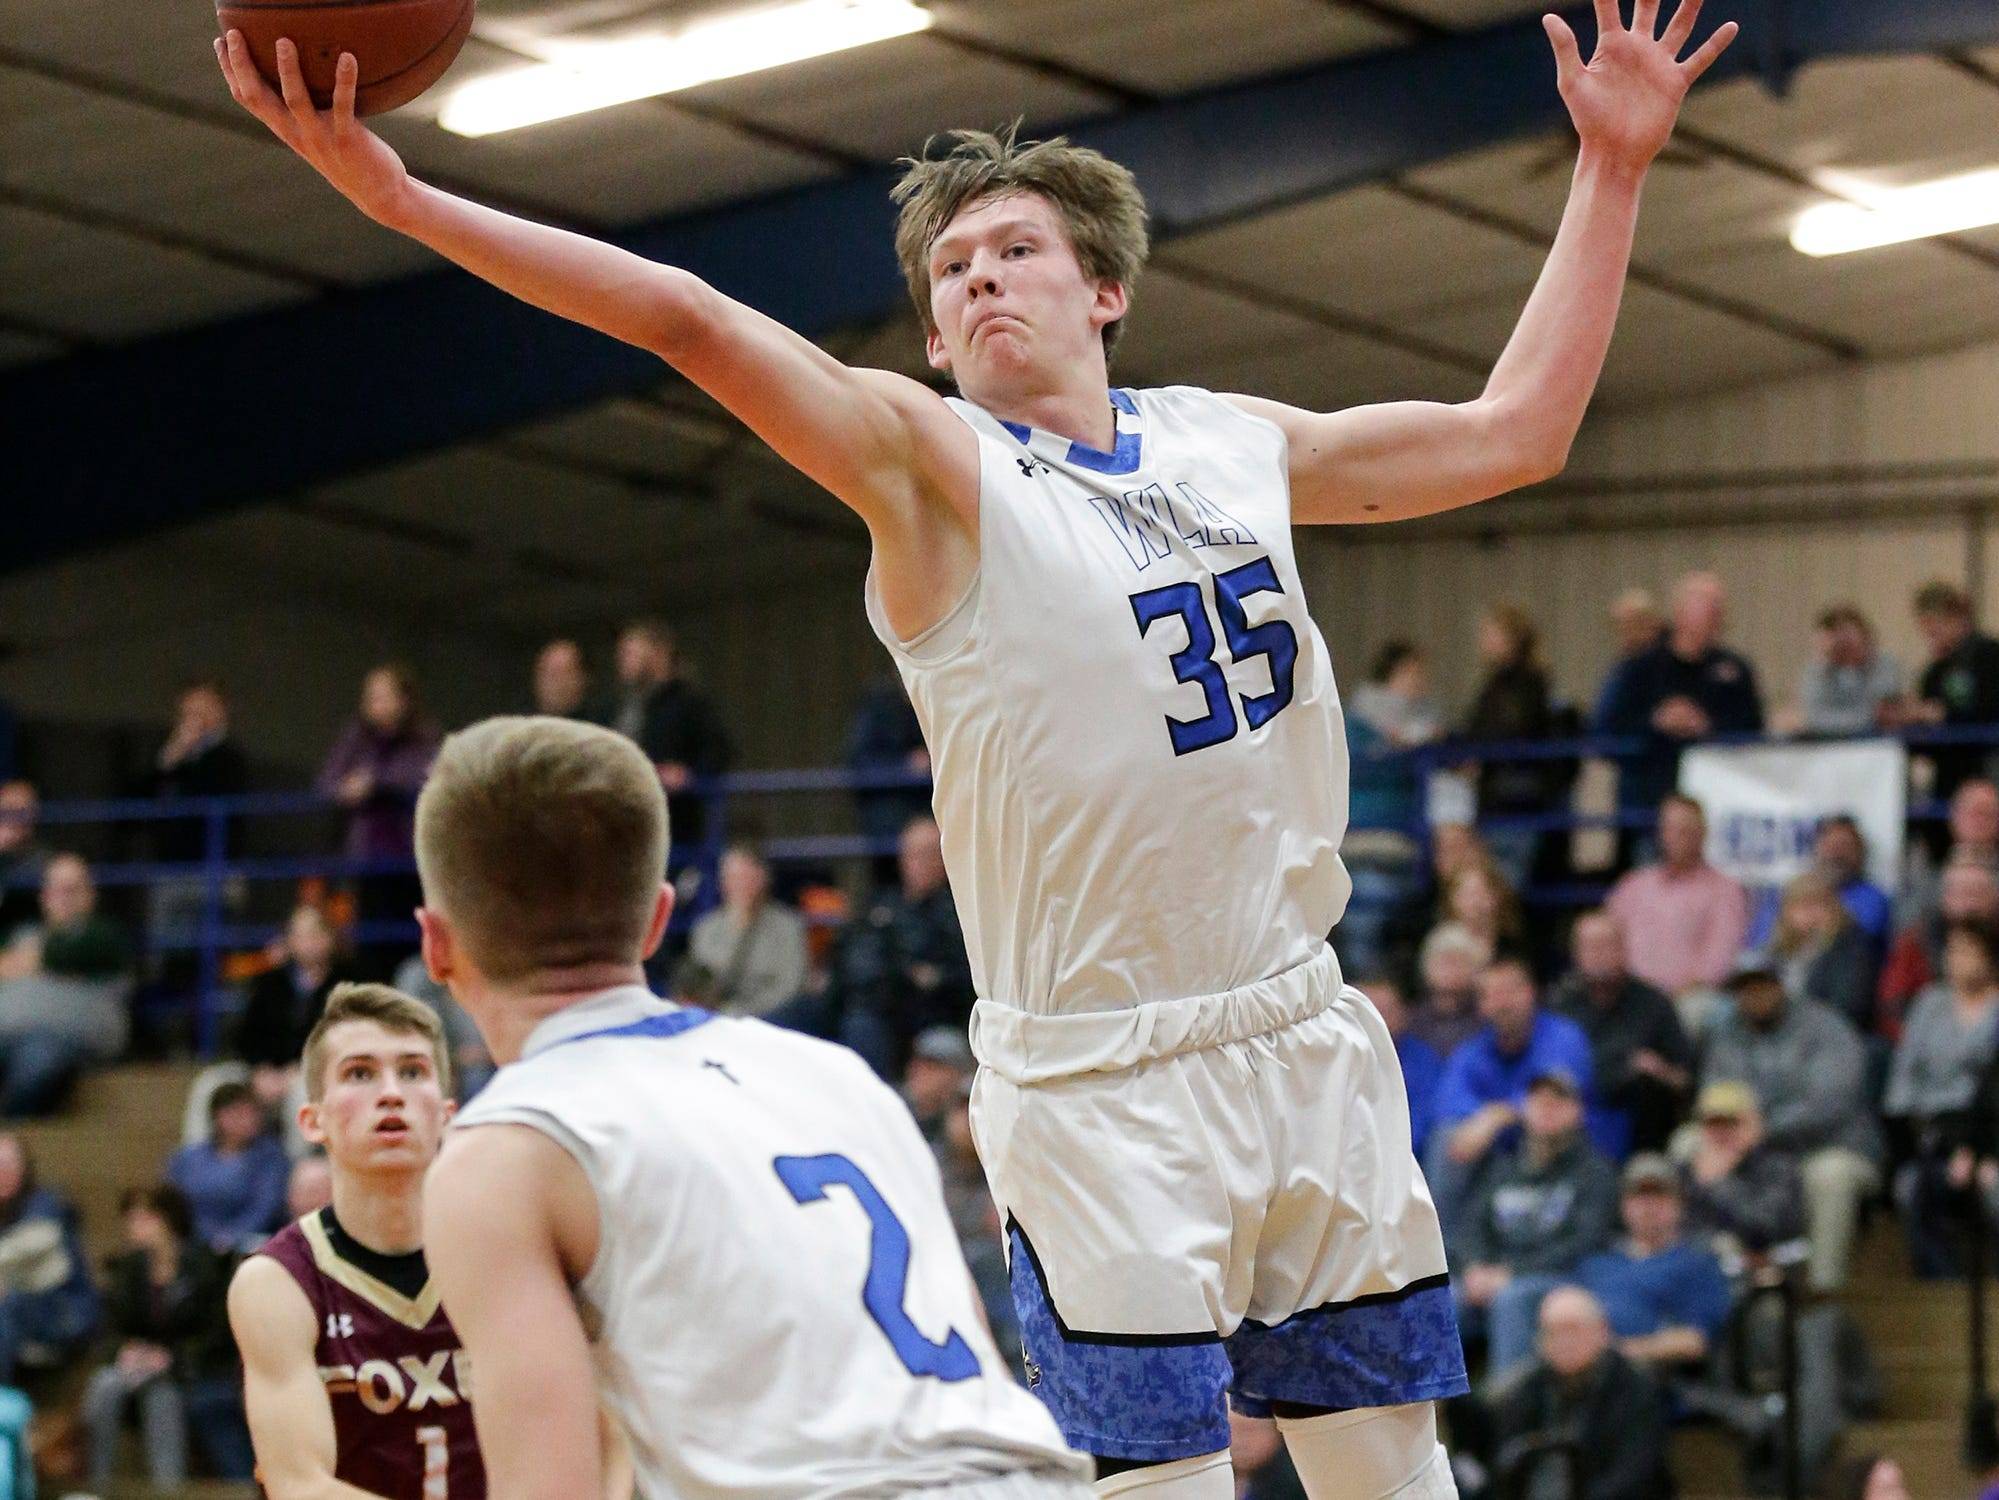 Winnebago Lutheran Academy boys basketball's Gabe Pruss (35) reaches for a rebound against Omro High School during their game Friday, February 1, 2019 in Fond du Lac. Doug Raflik/USA TODAY NETWORK-Wisconsin